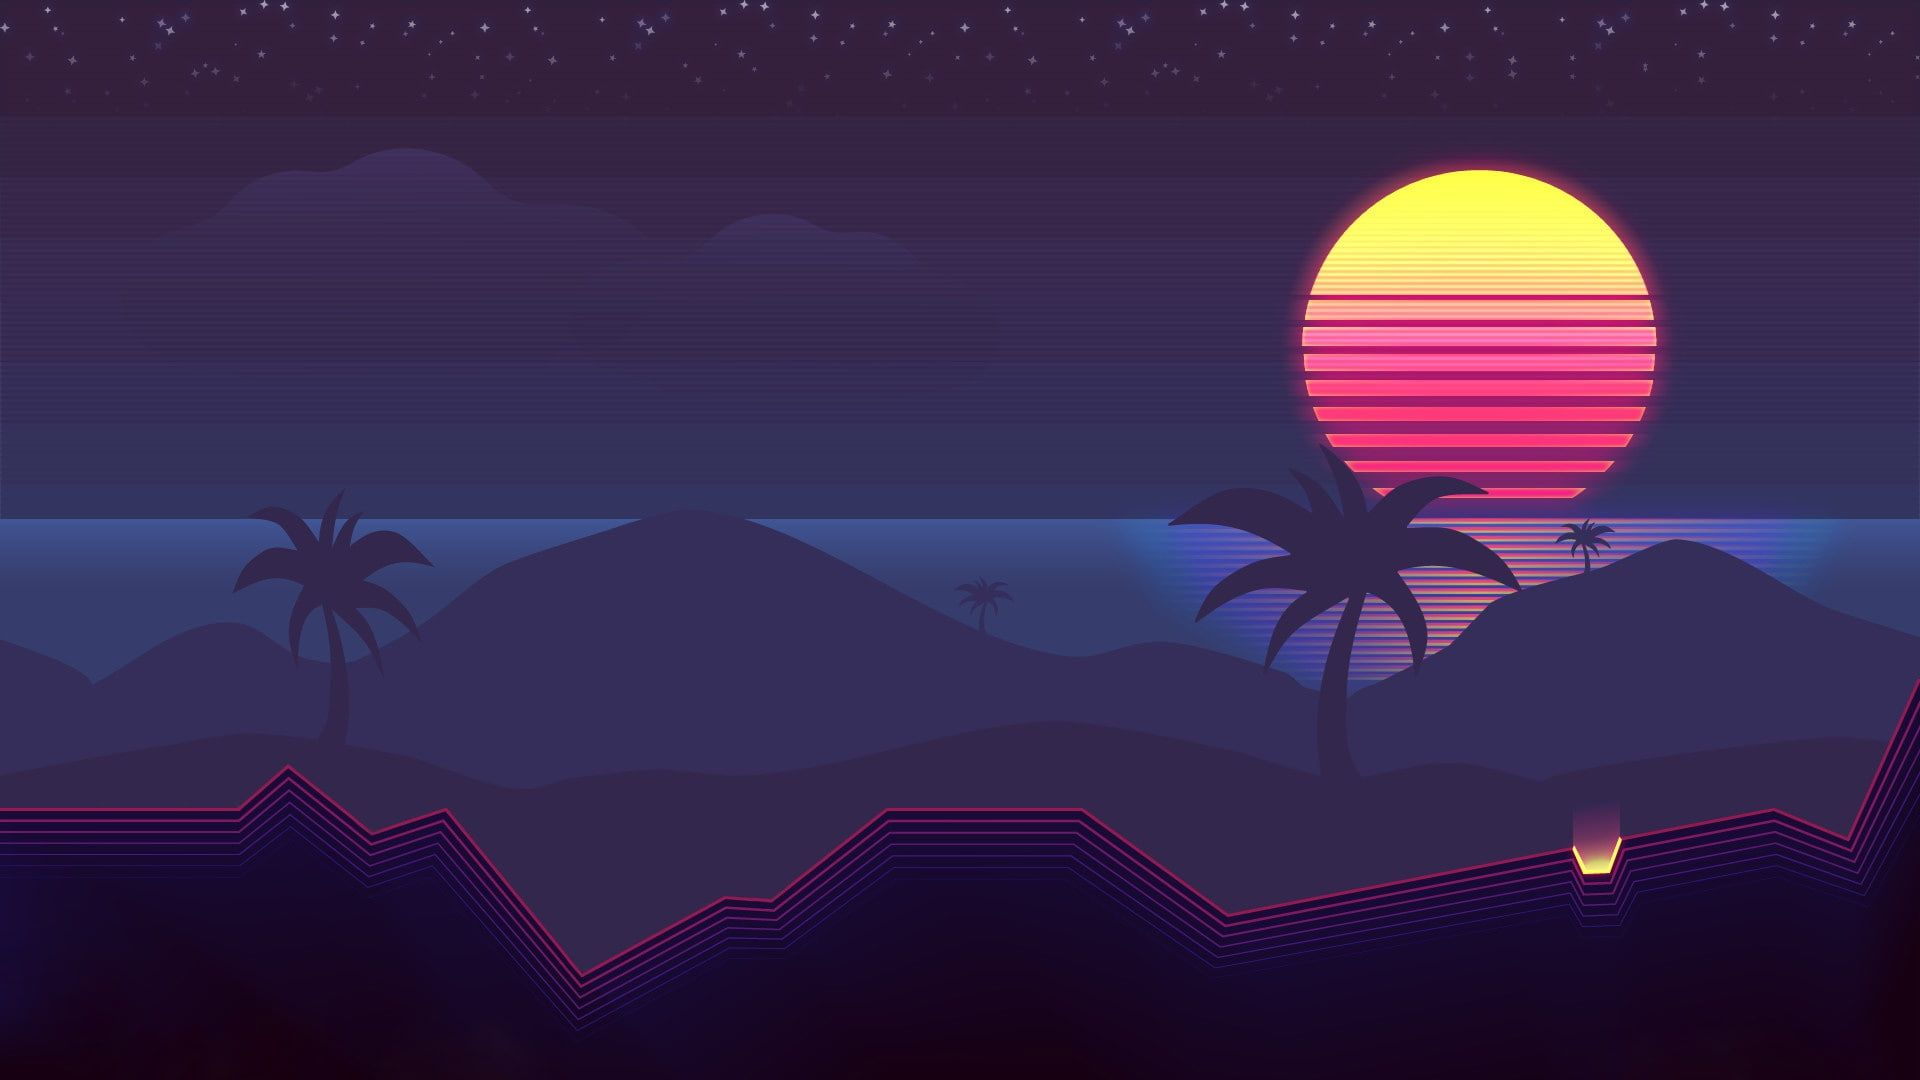 The Sun Music Palm Trees Background 80s Neon 80 S Synth Retrowave Synthwave New Retro Wave Futures Neon Wallpaper Vaporwave Wallpaper Heaven Wallpaper